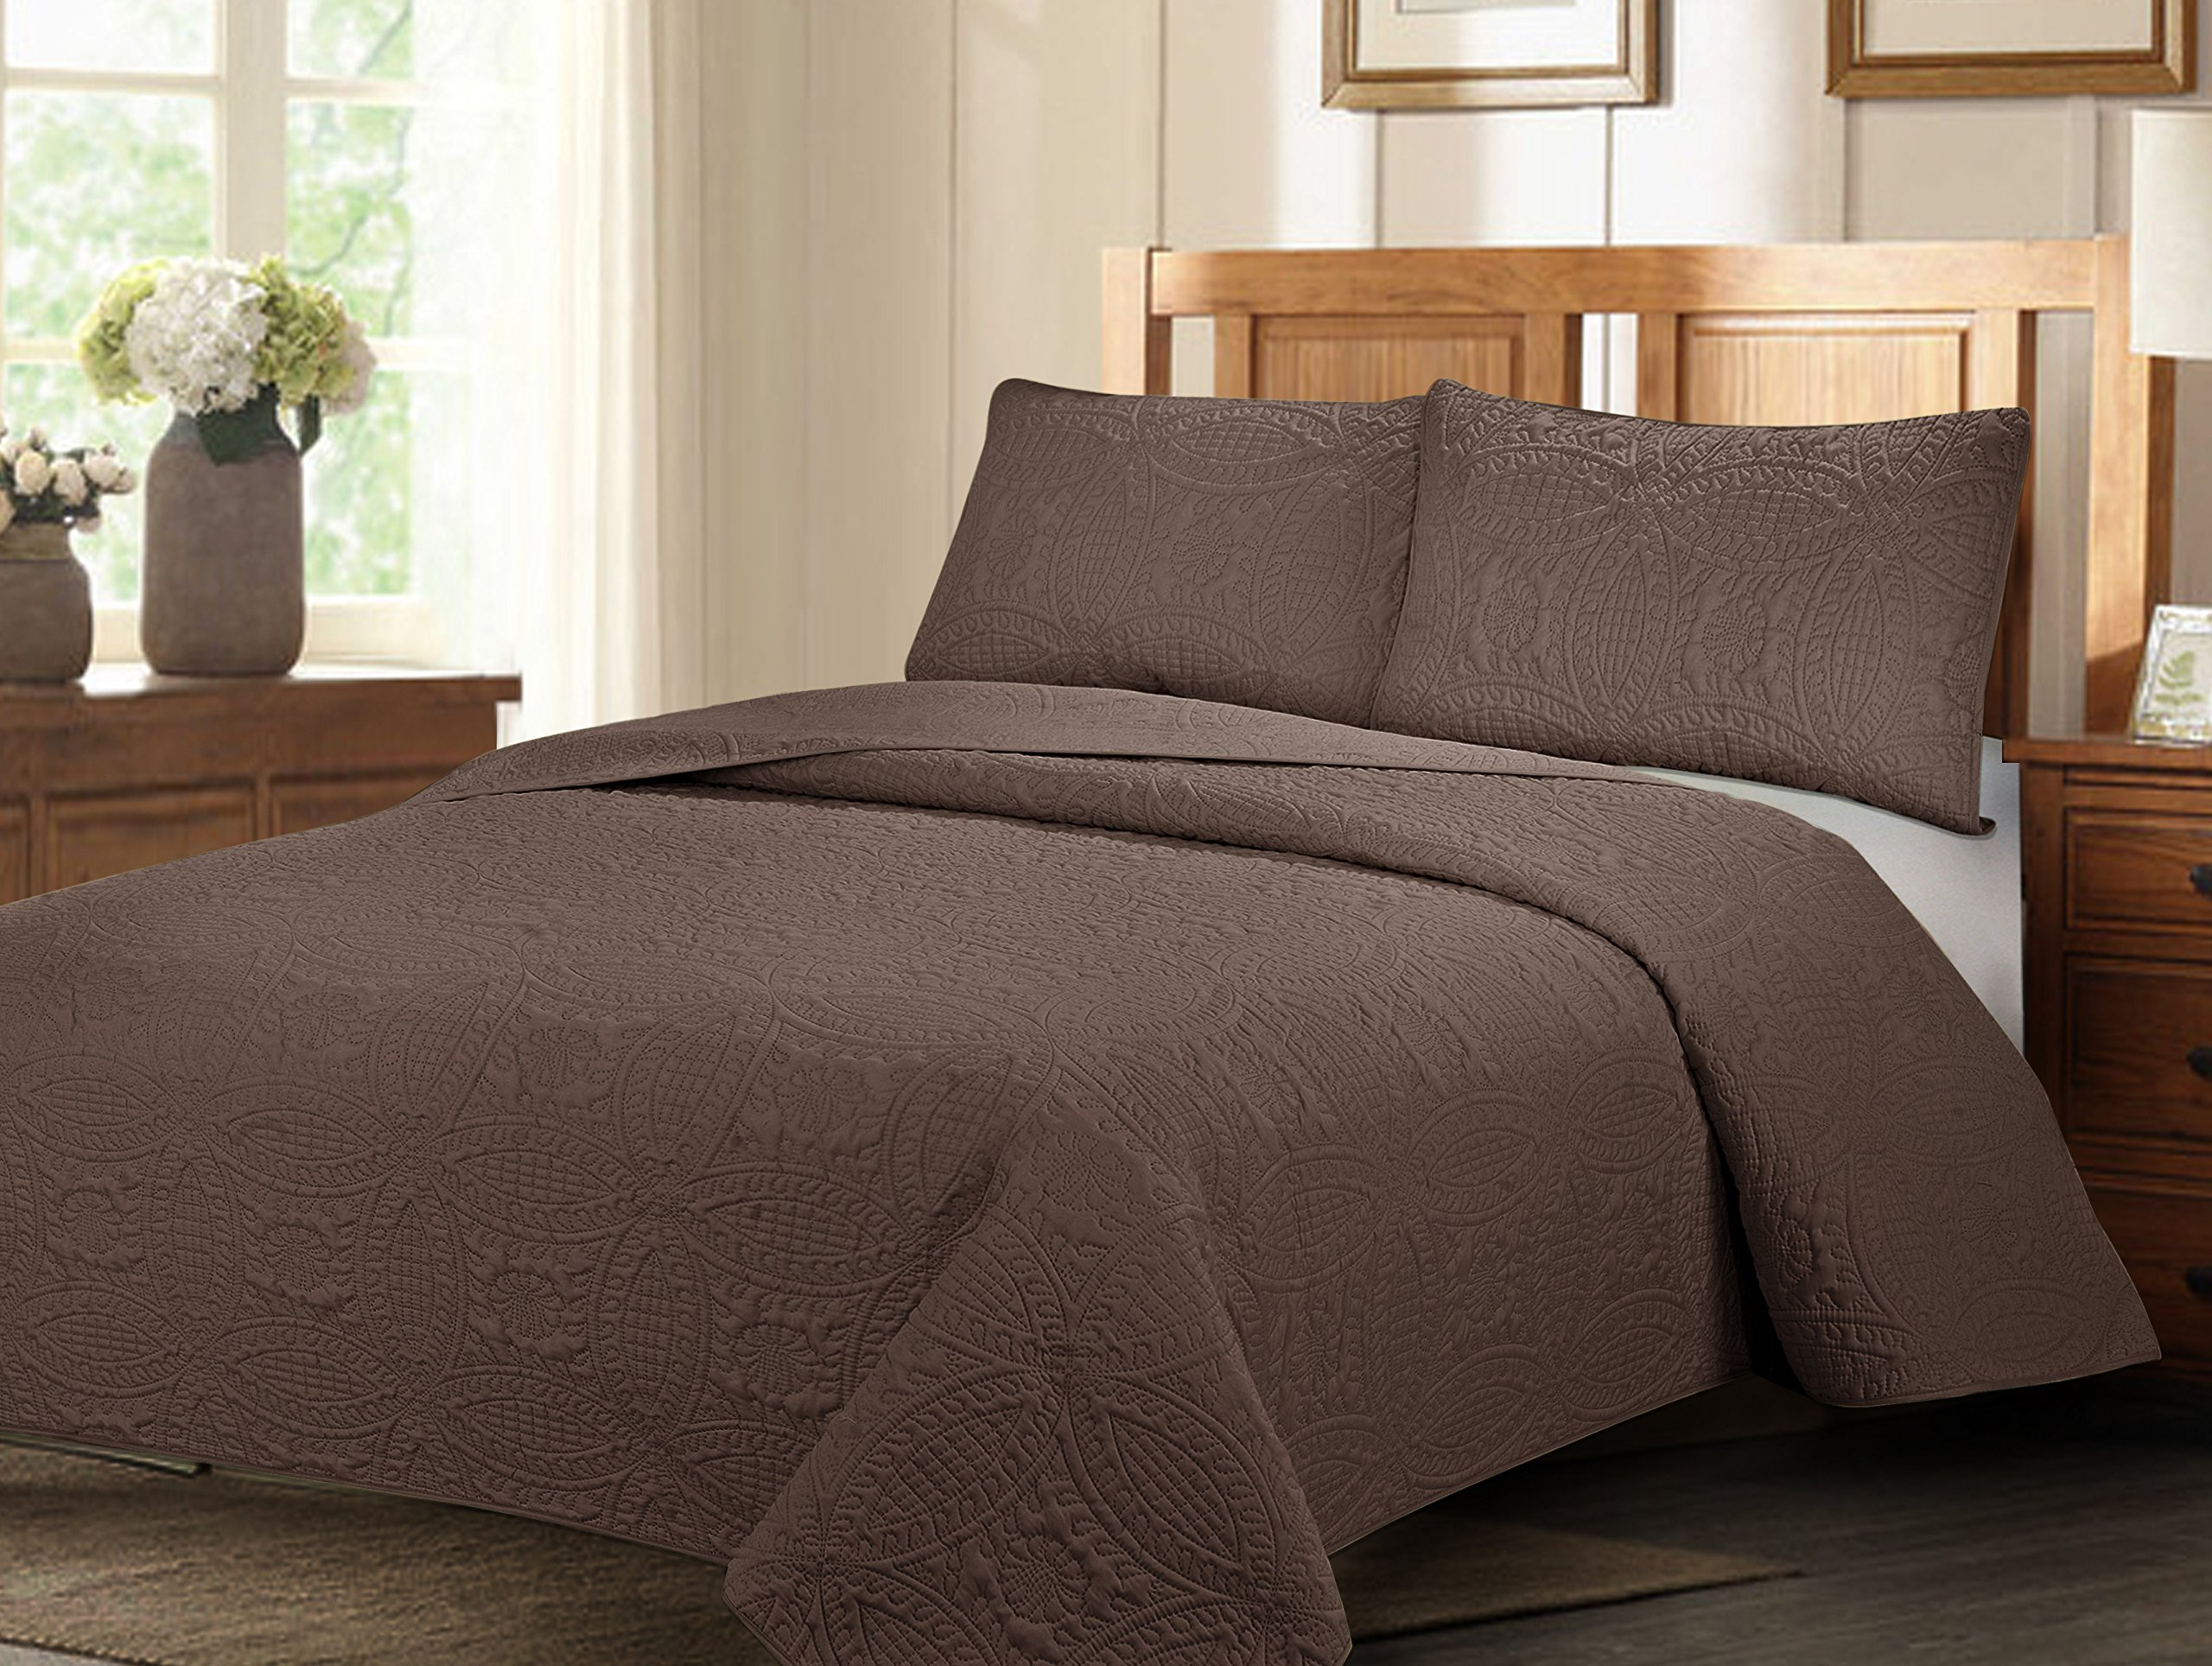 Natural Life Home Extra Oversized 3-pc Bedspread Set with Geometry Pattern (Cal King, Mocha)